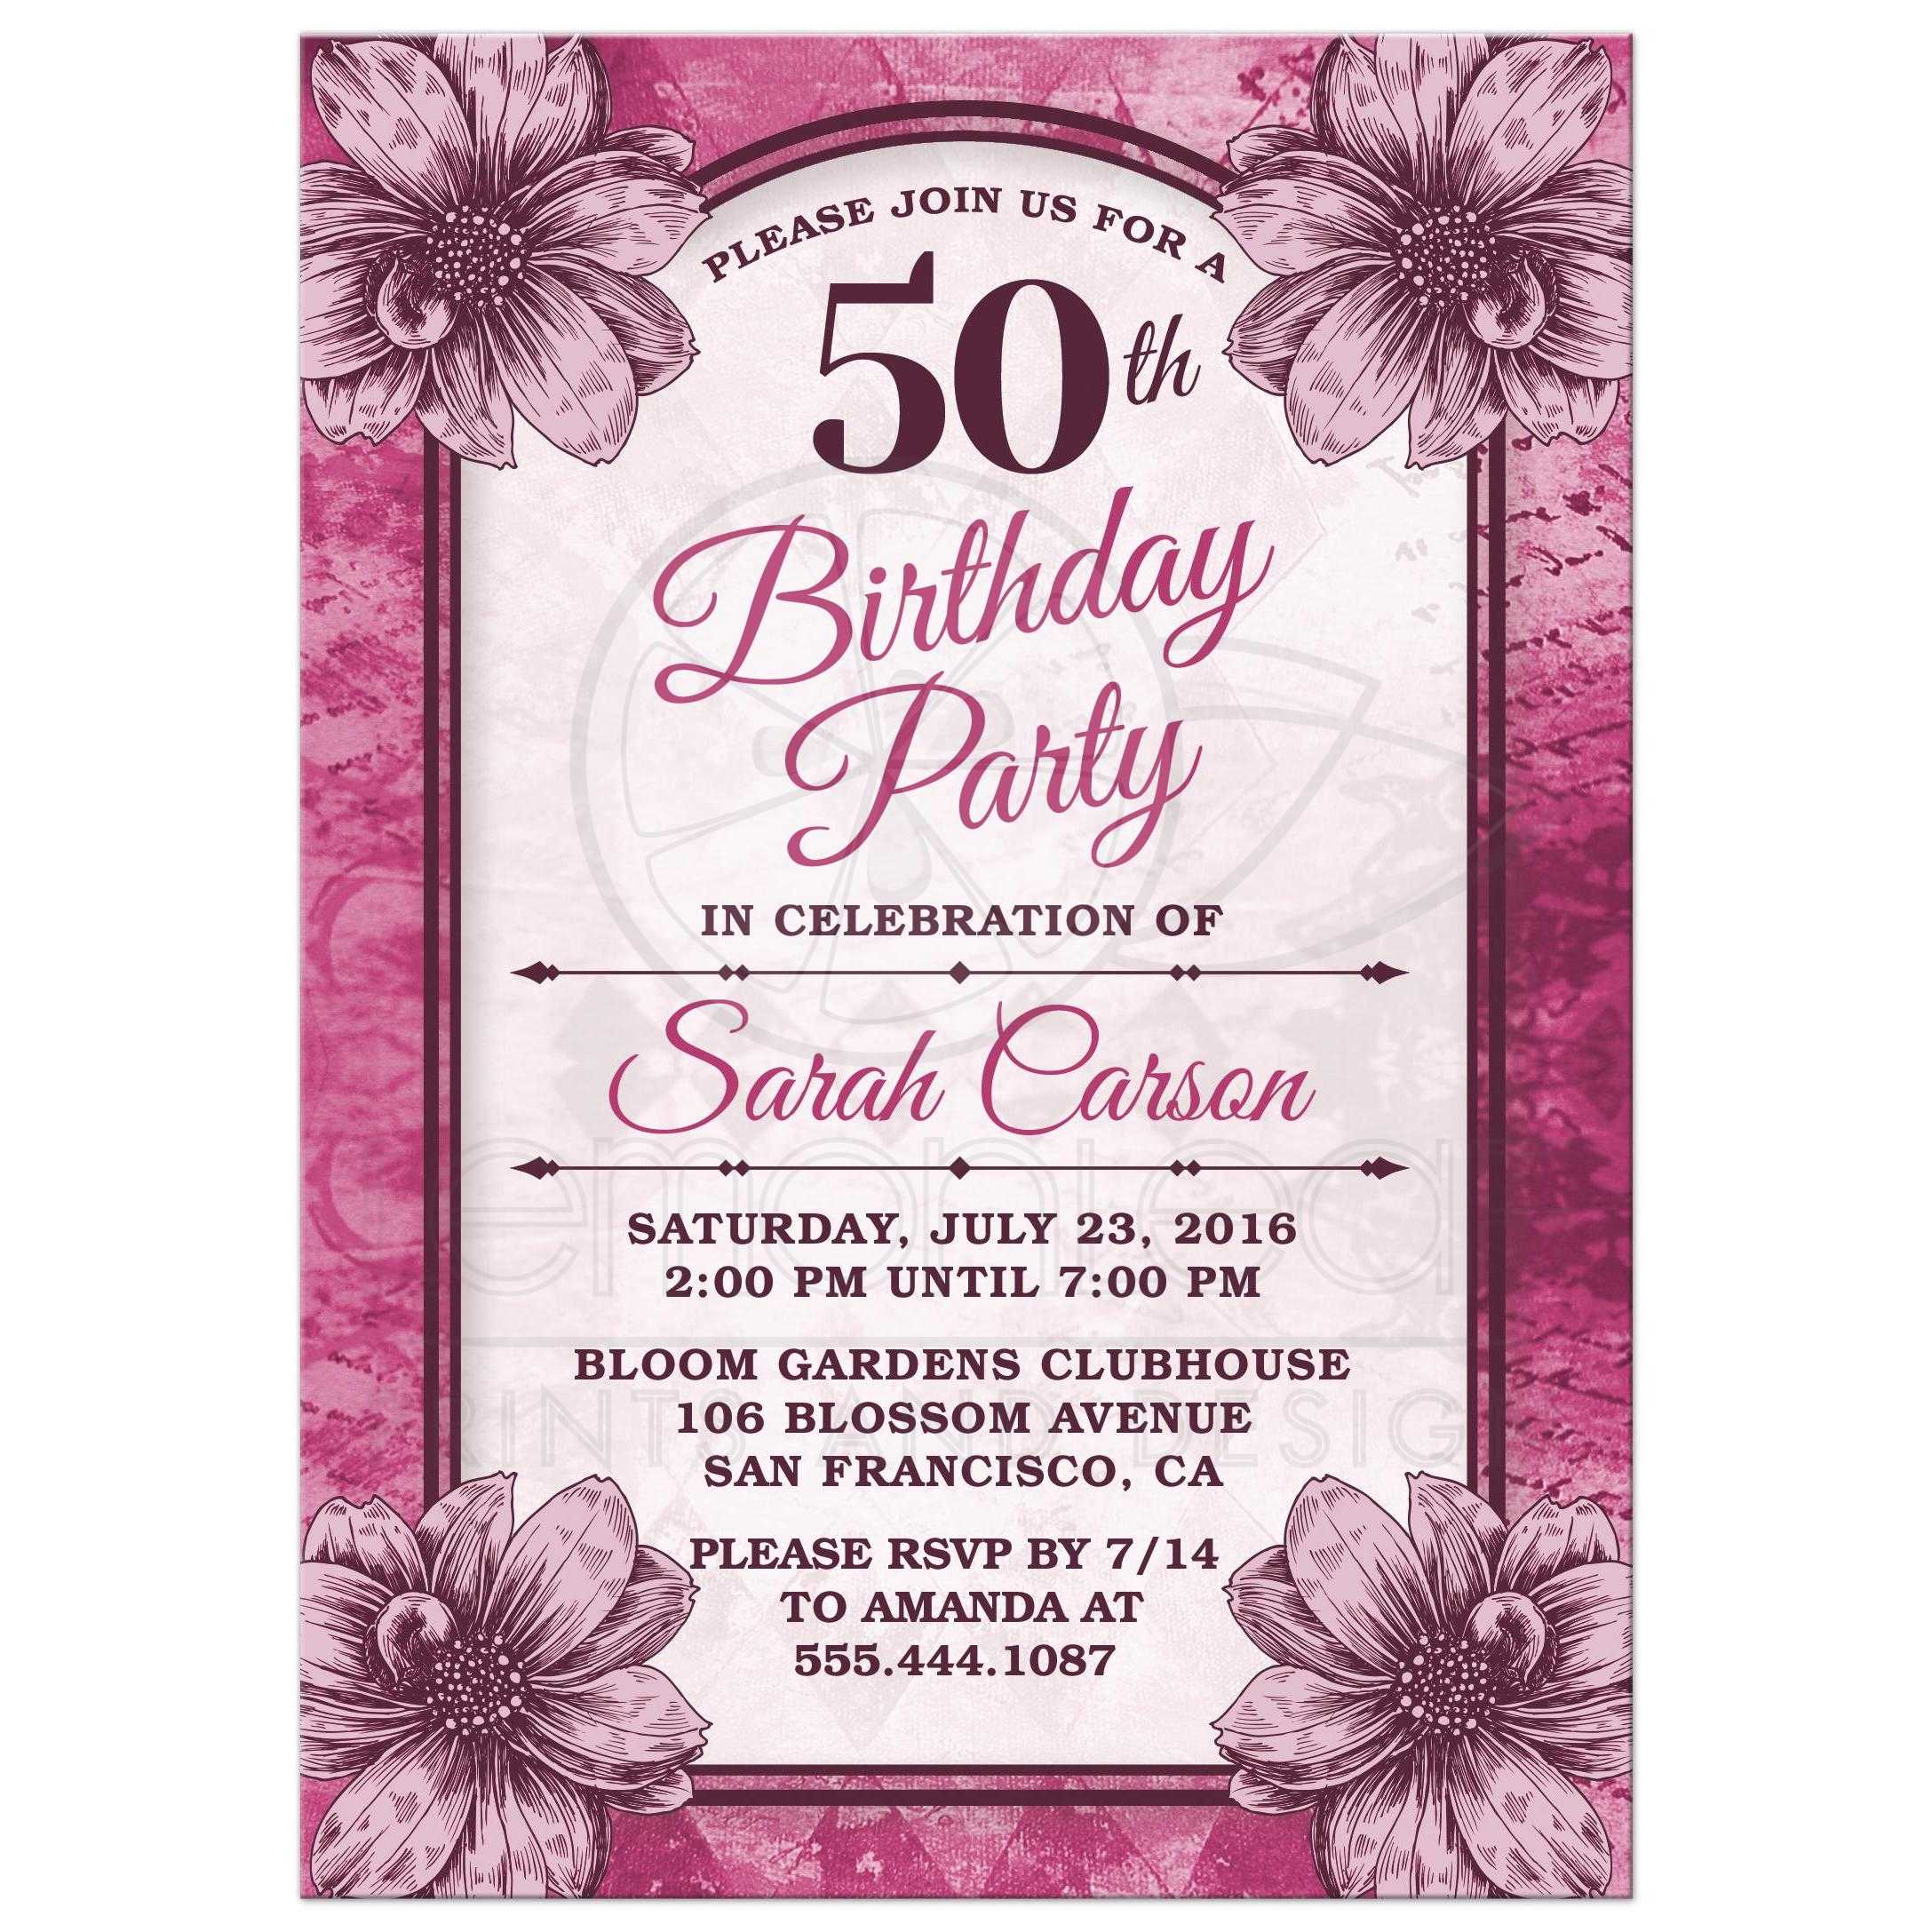 50th birthday party invitations fuchsia flowers fuchsia flowers 50th birthday party invitations front filmwisefo